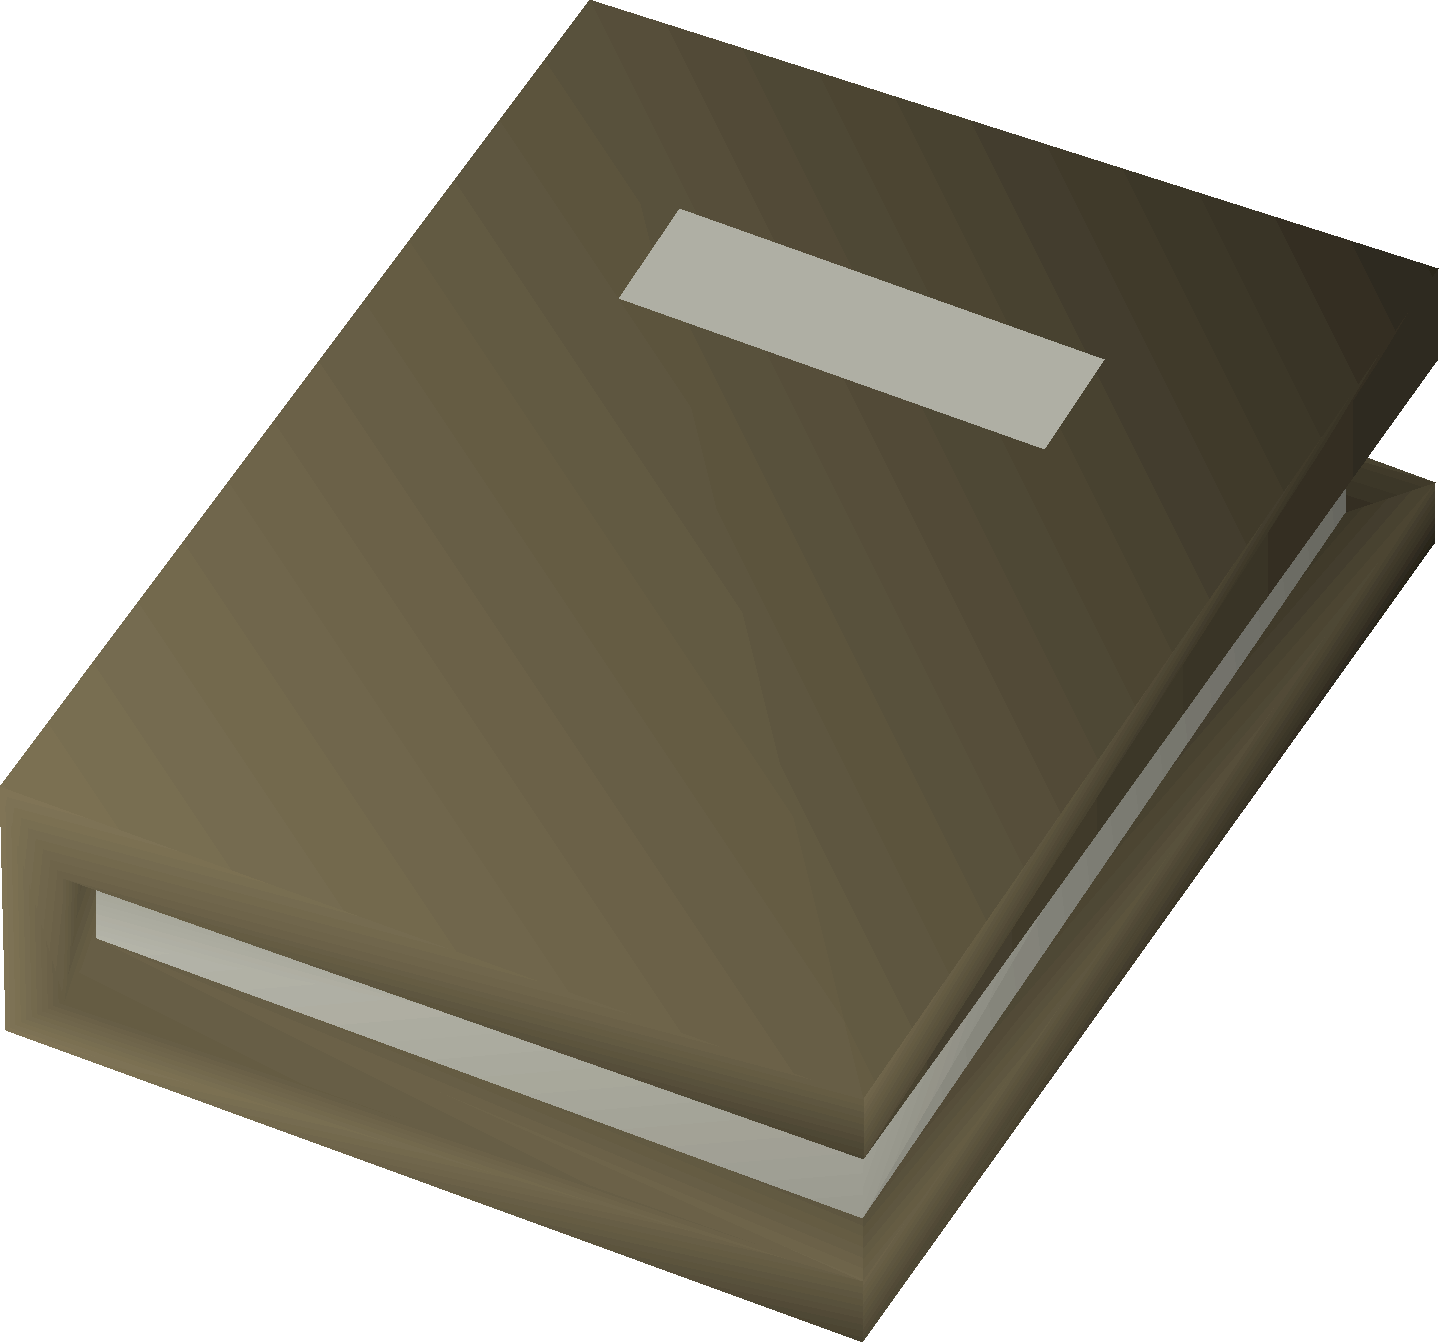 Collection log - OSRS Wiki